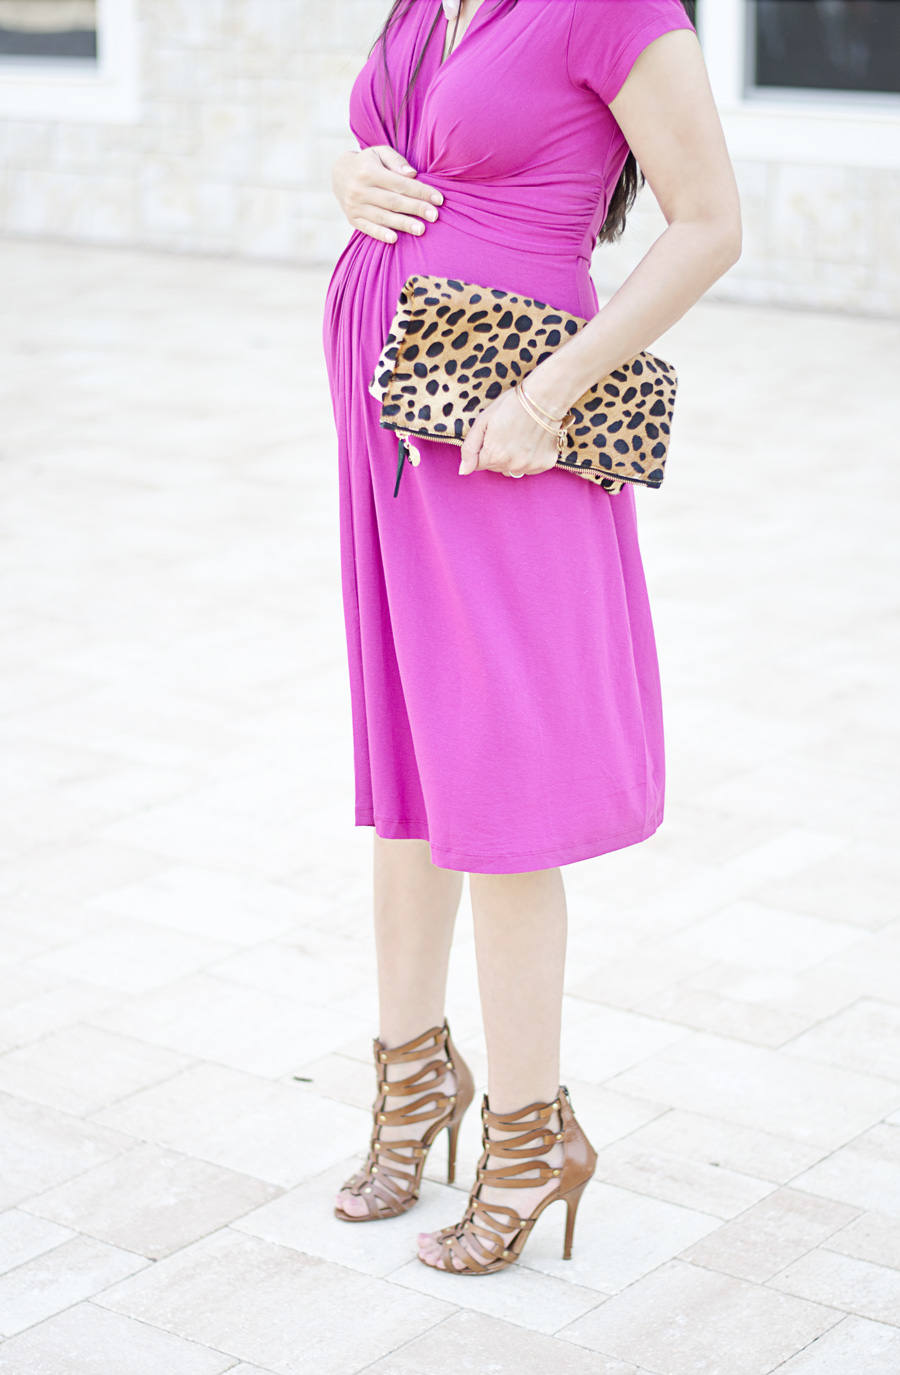 seraphine maternity style with a clare v foldover leopard clutch